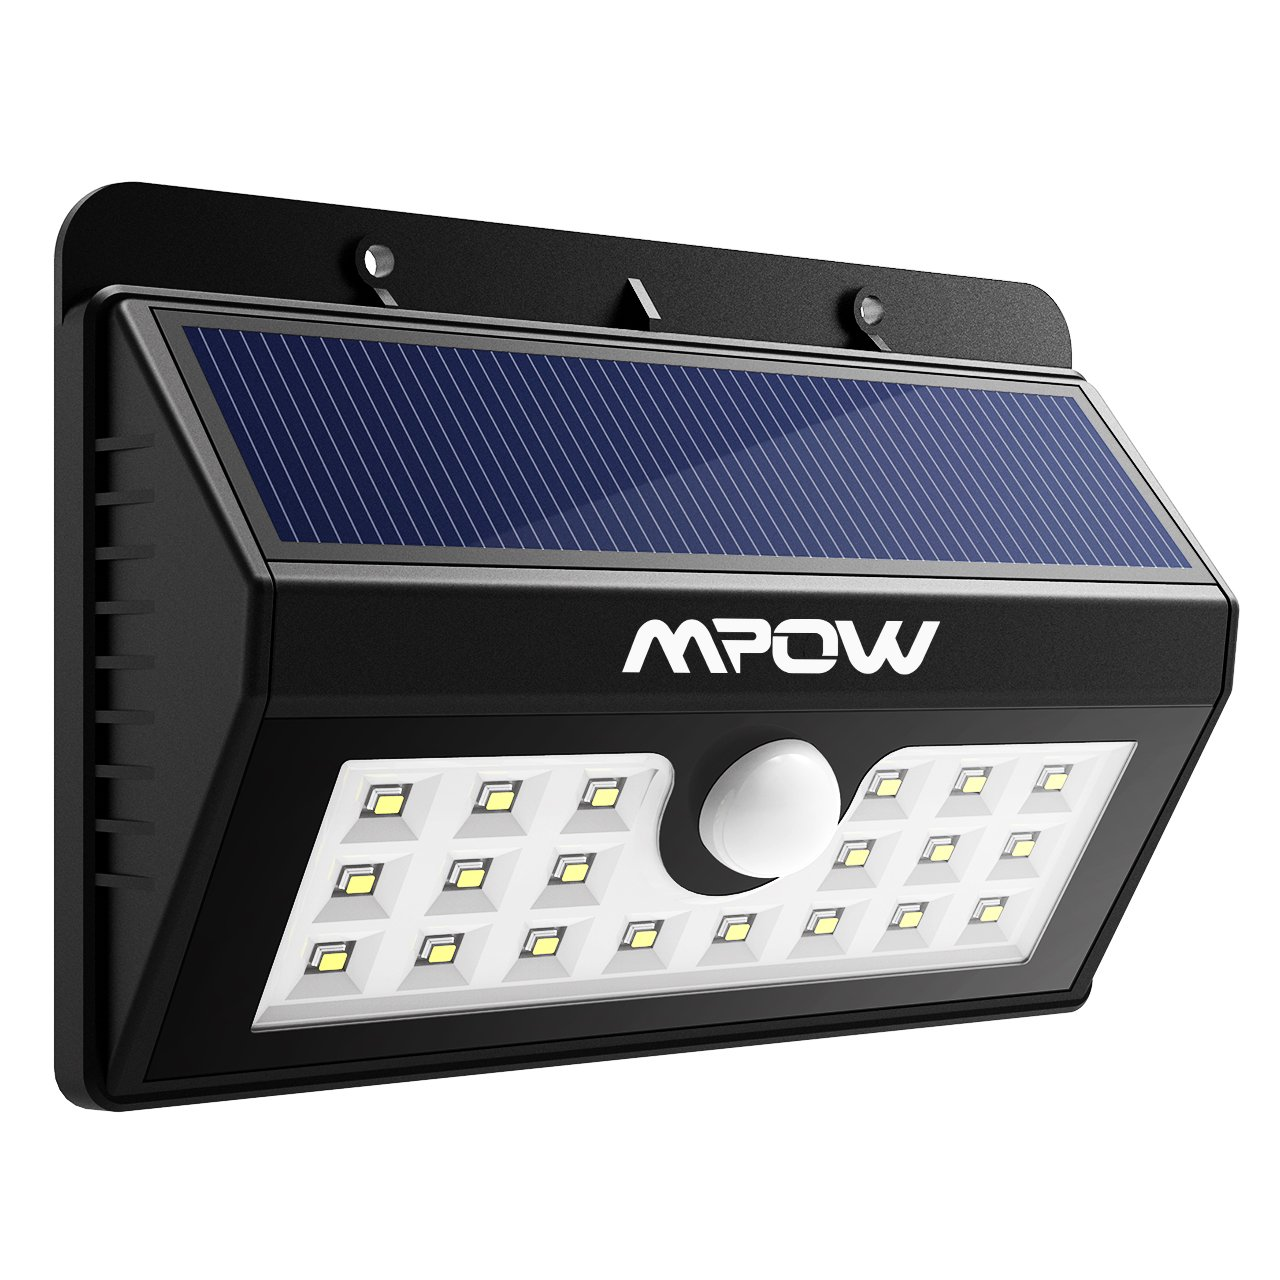 Mpow Solar Lights 20 Led Motion Sensor Security Home Wiring Diagram For A Pir Light Switch How To Wire 3 In 1 Wireless Weatherproof Outside Pathway Garden